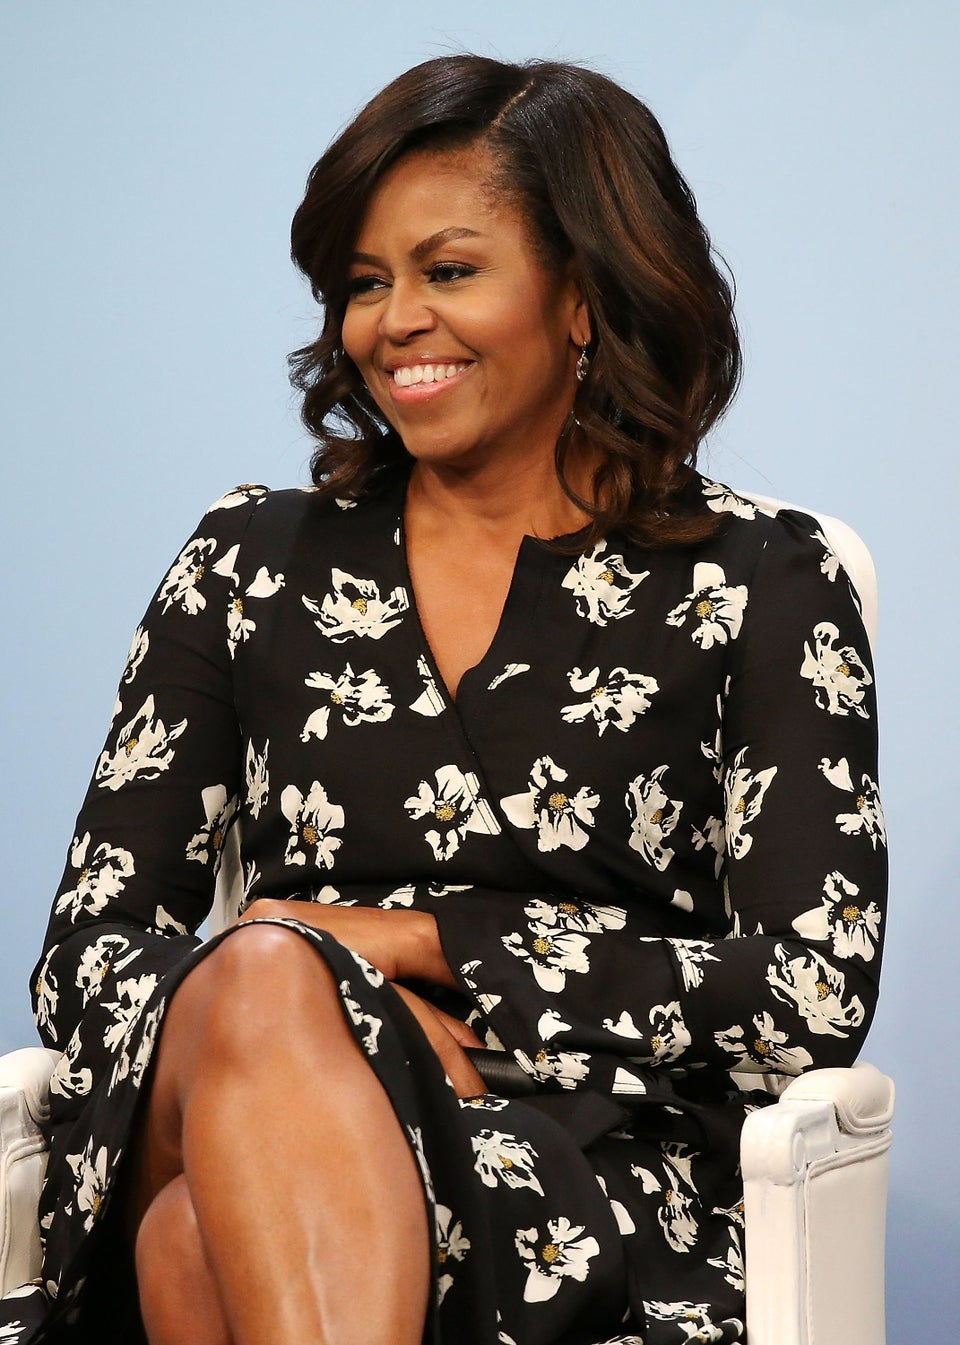 Michelle Obama On Sisterhood: 'We Cannot Be Catty'